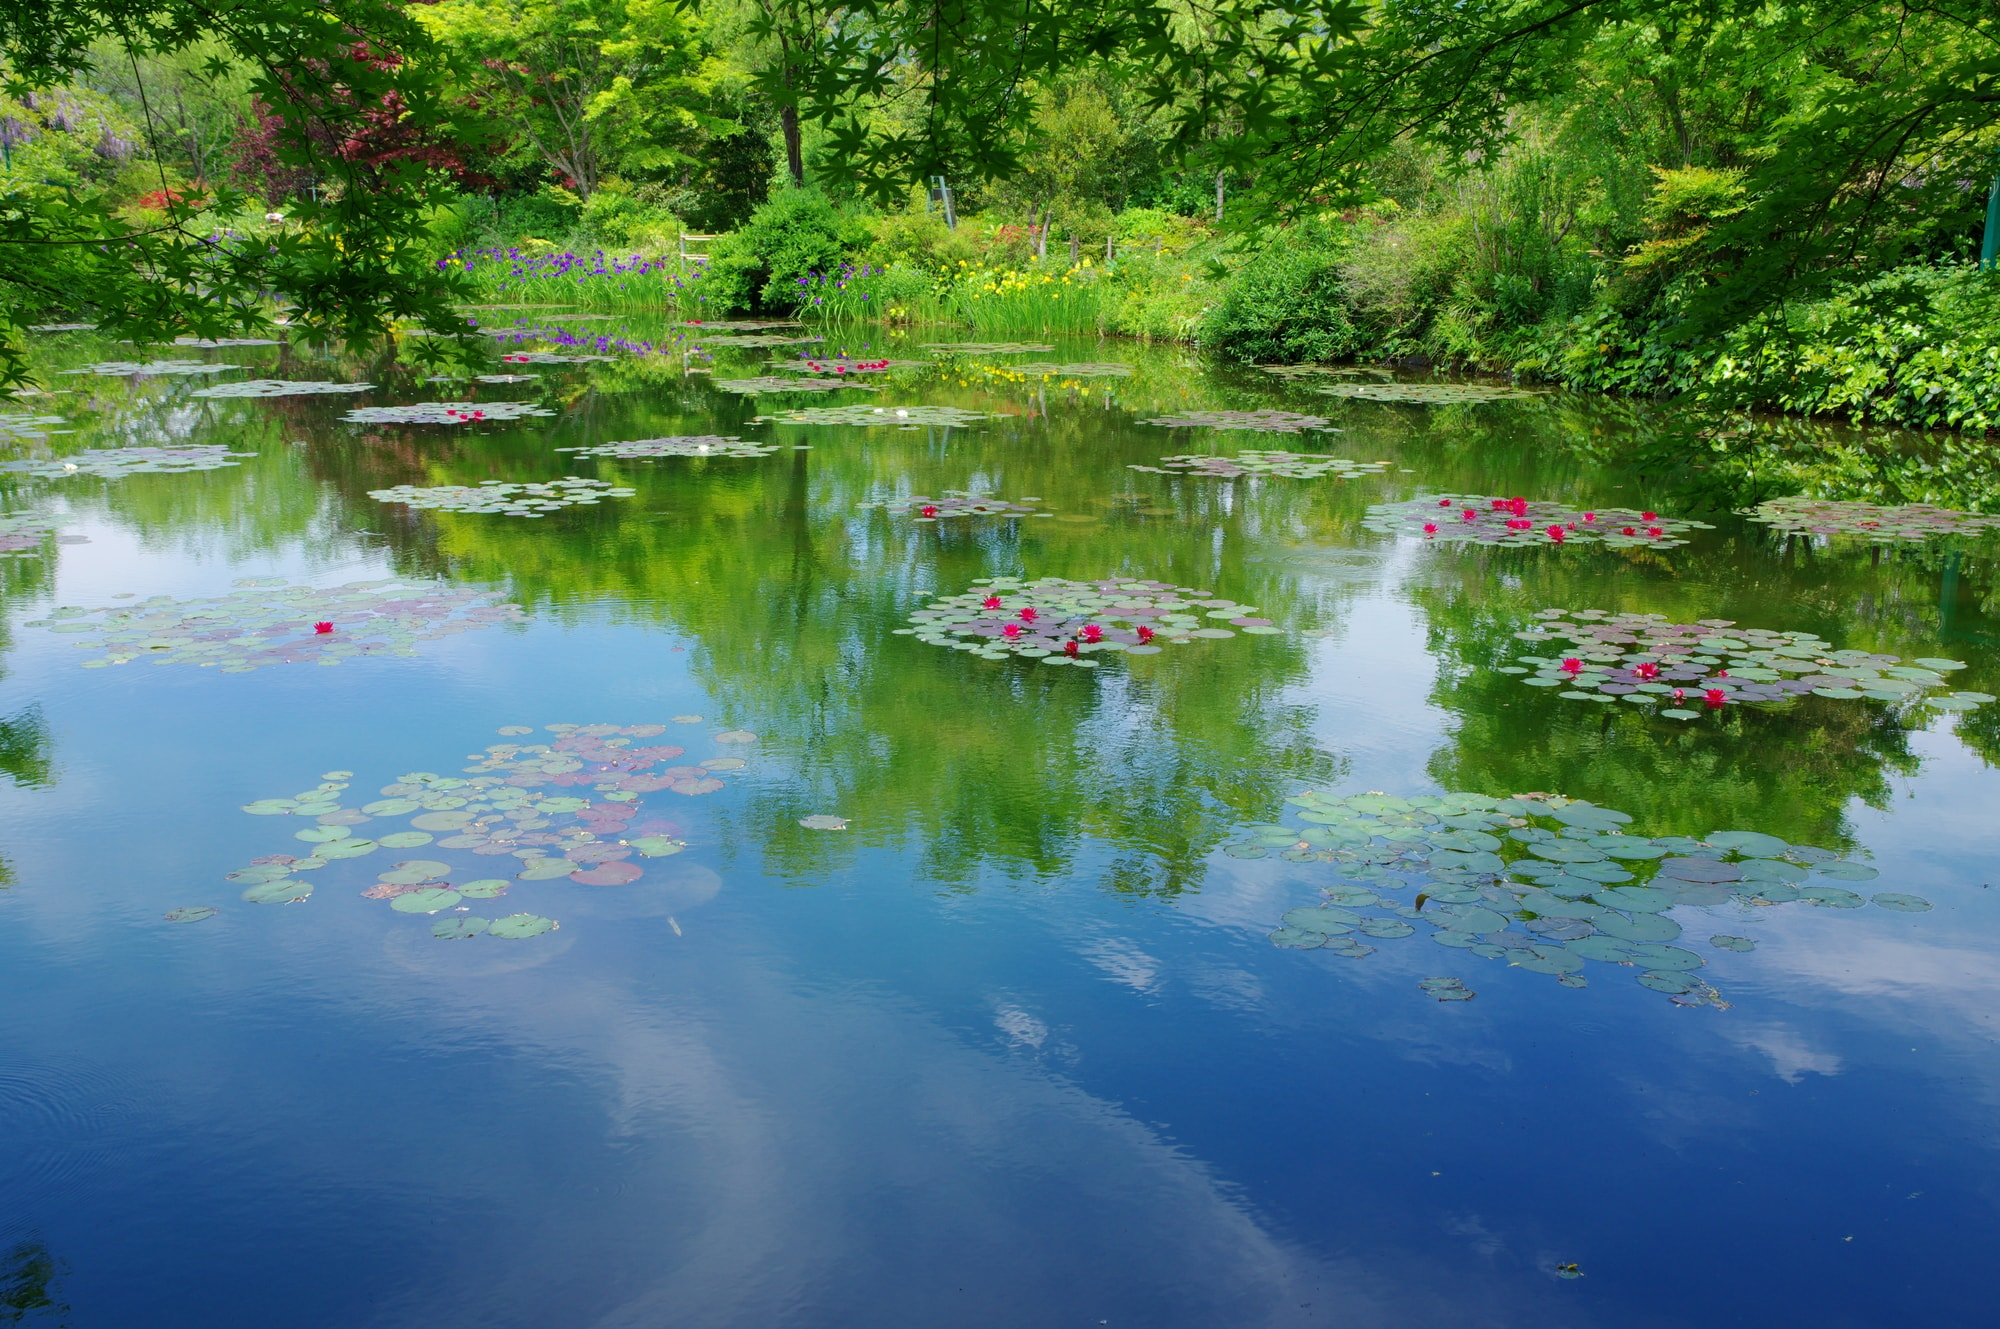 The Water Garden is reminiscent of Monet's water lily painti